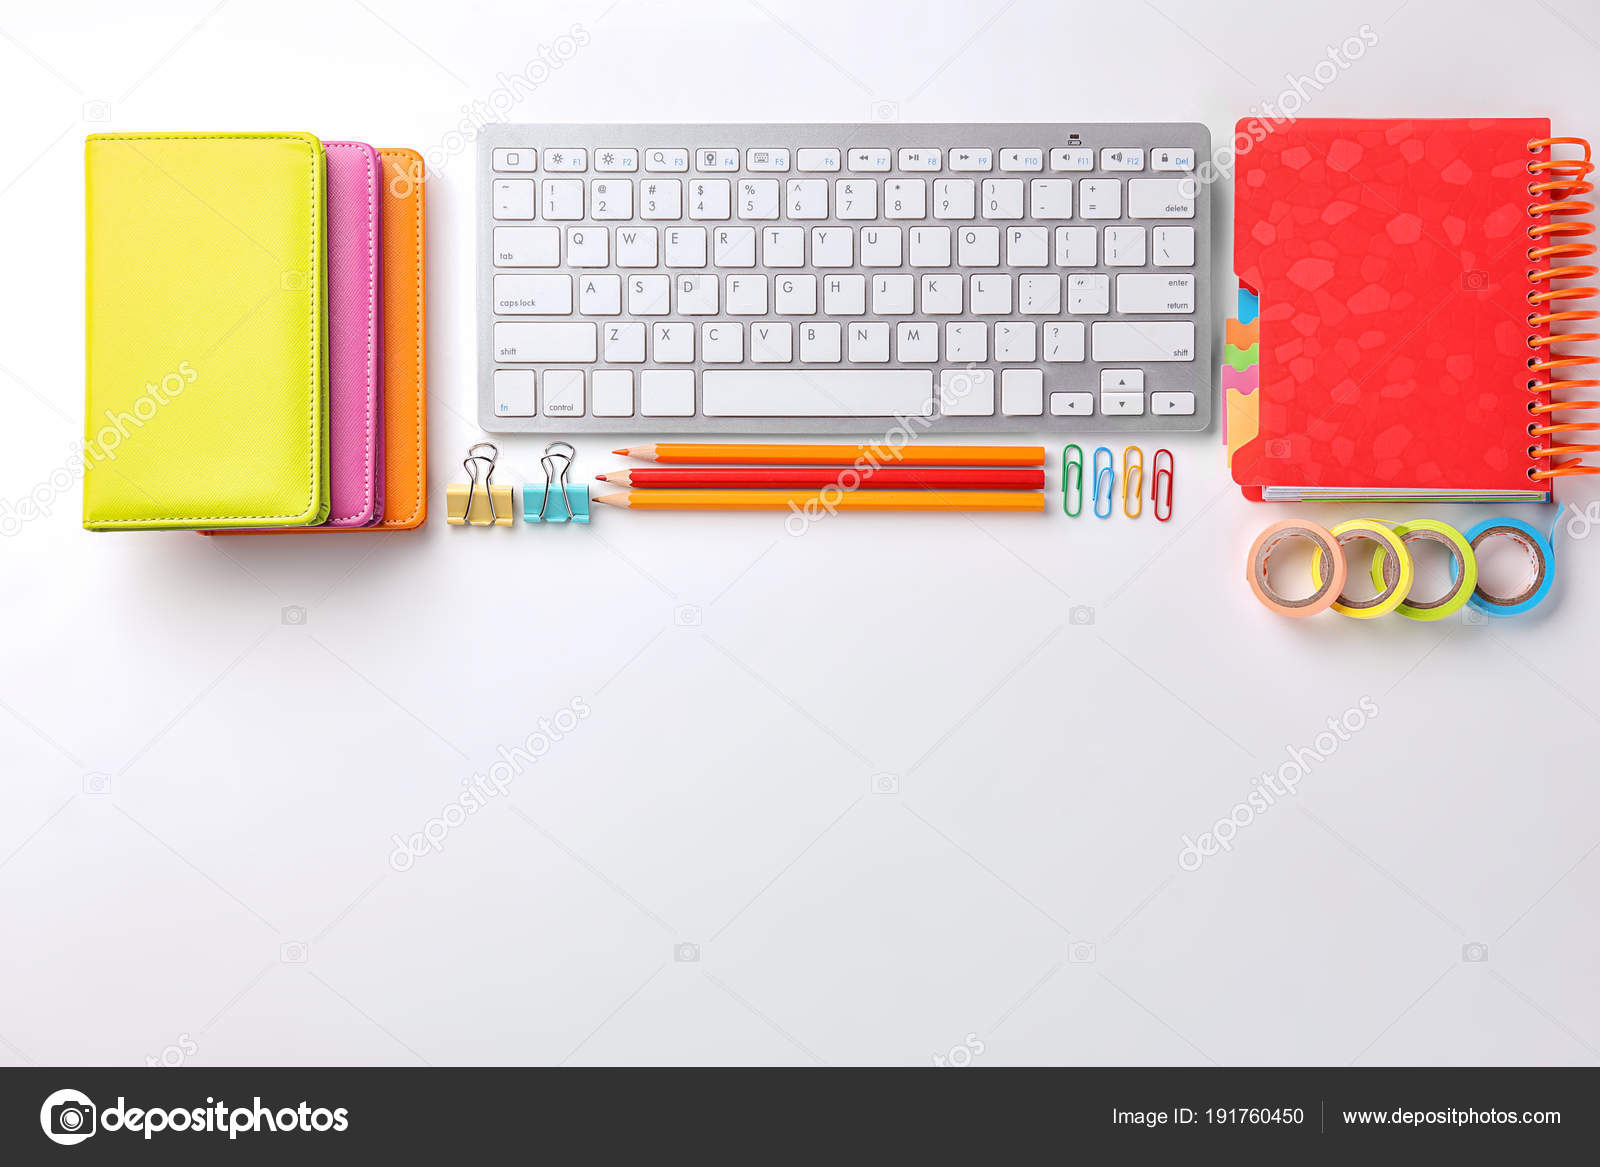 hight resolution of computer keyboard and stationery on white background flat lay workplace table composition stock image